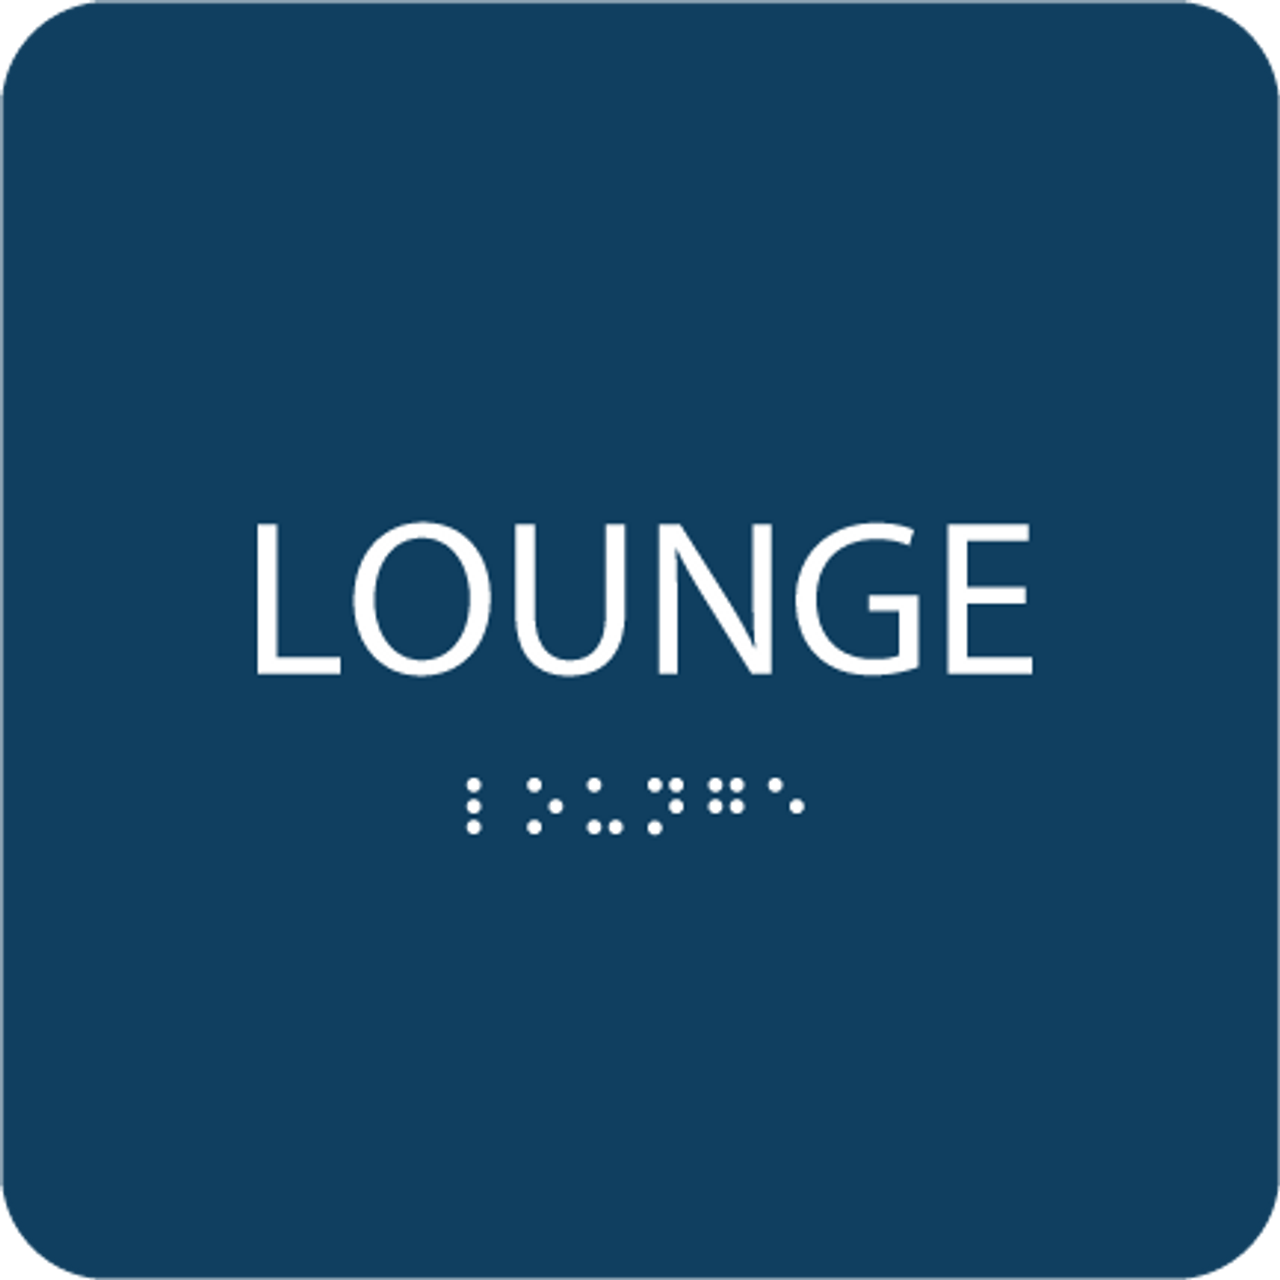 Blue Lounge Tactile Sign